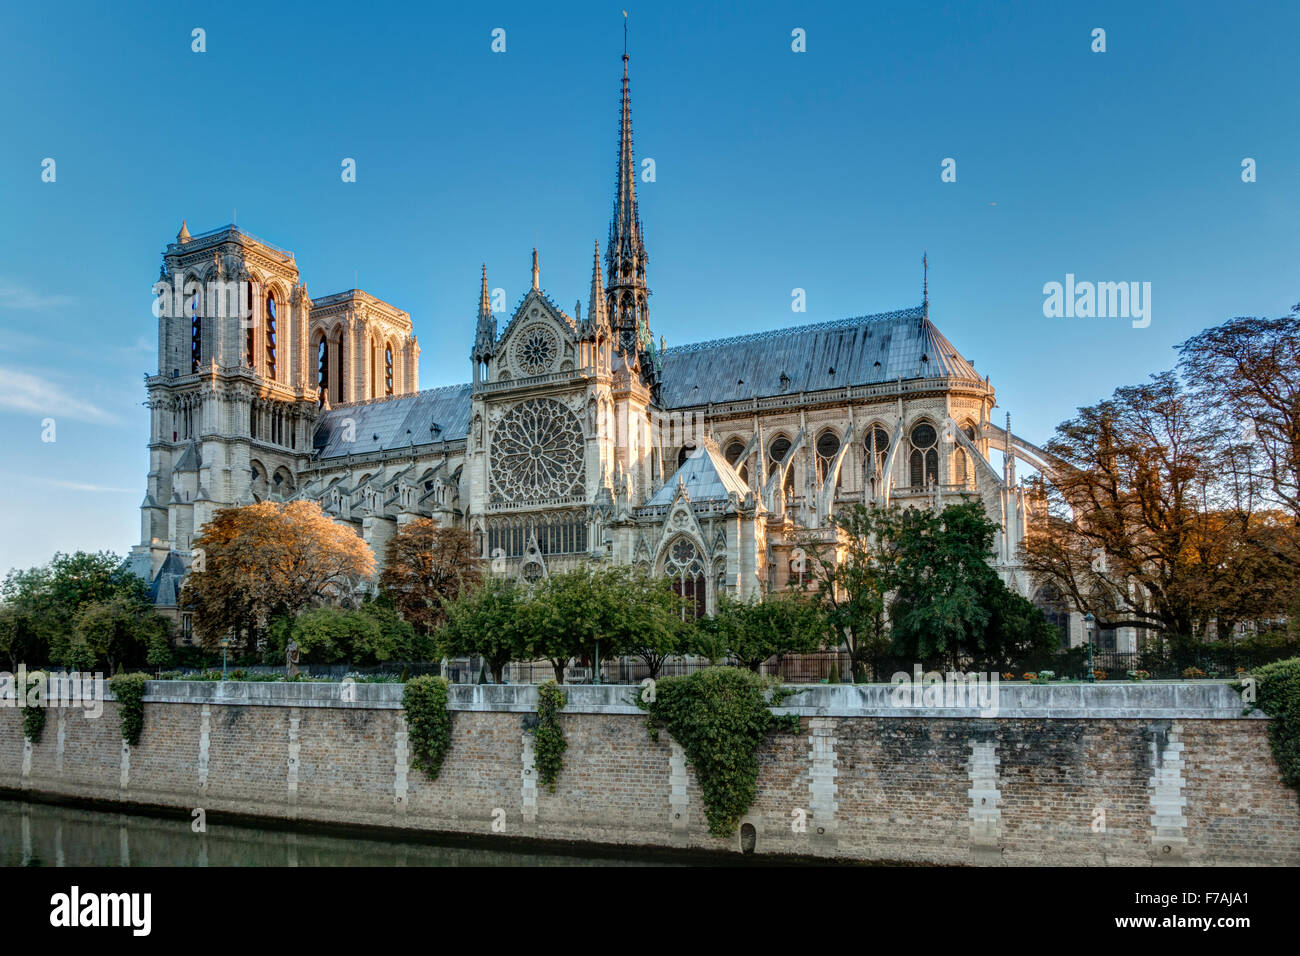 Notre Dame, Paris France Photo Stock